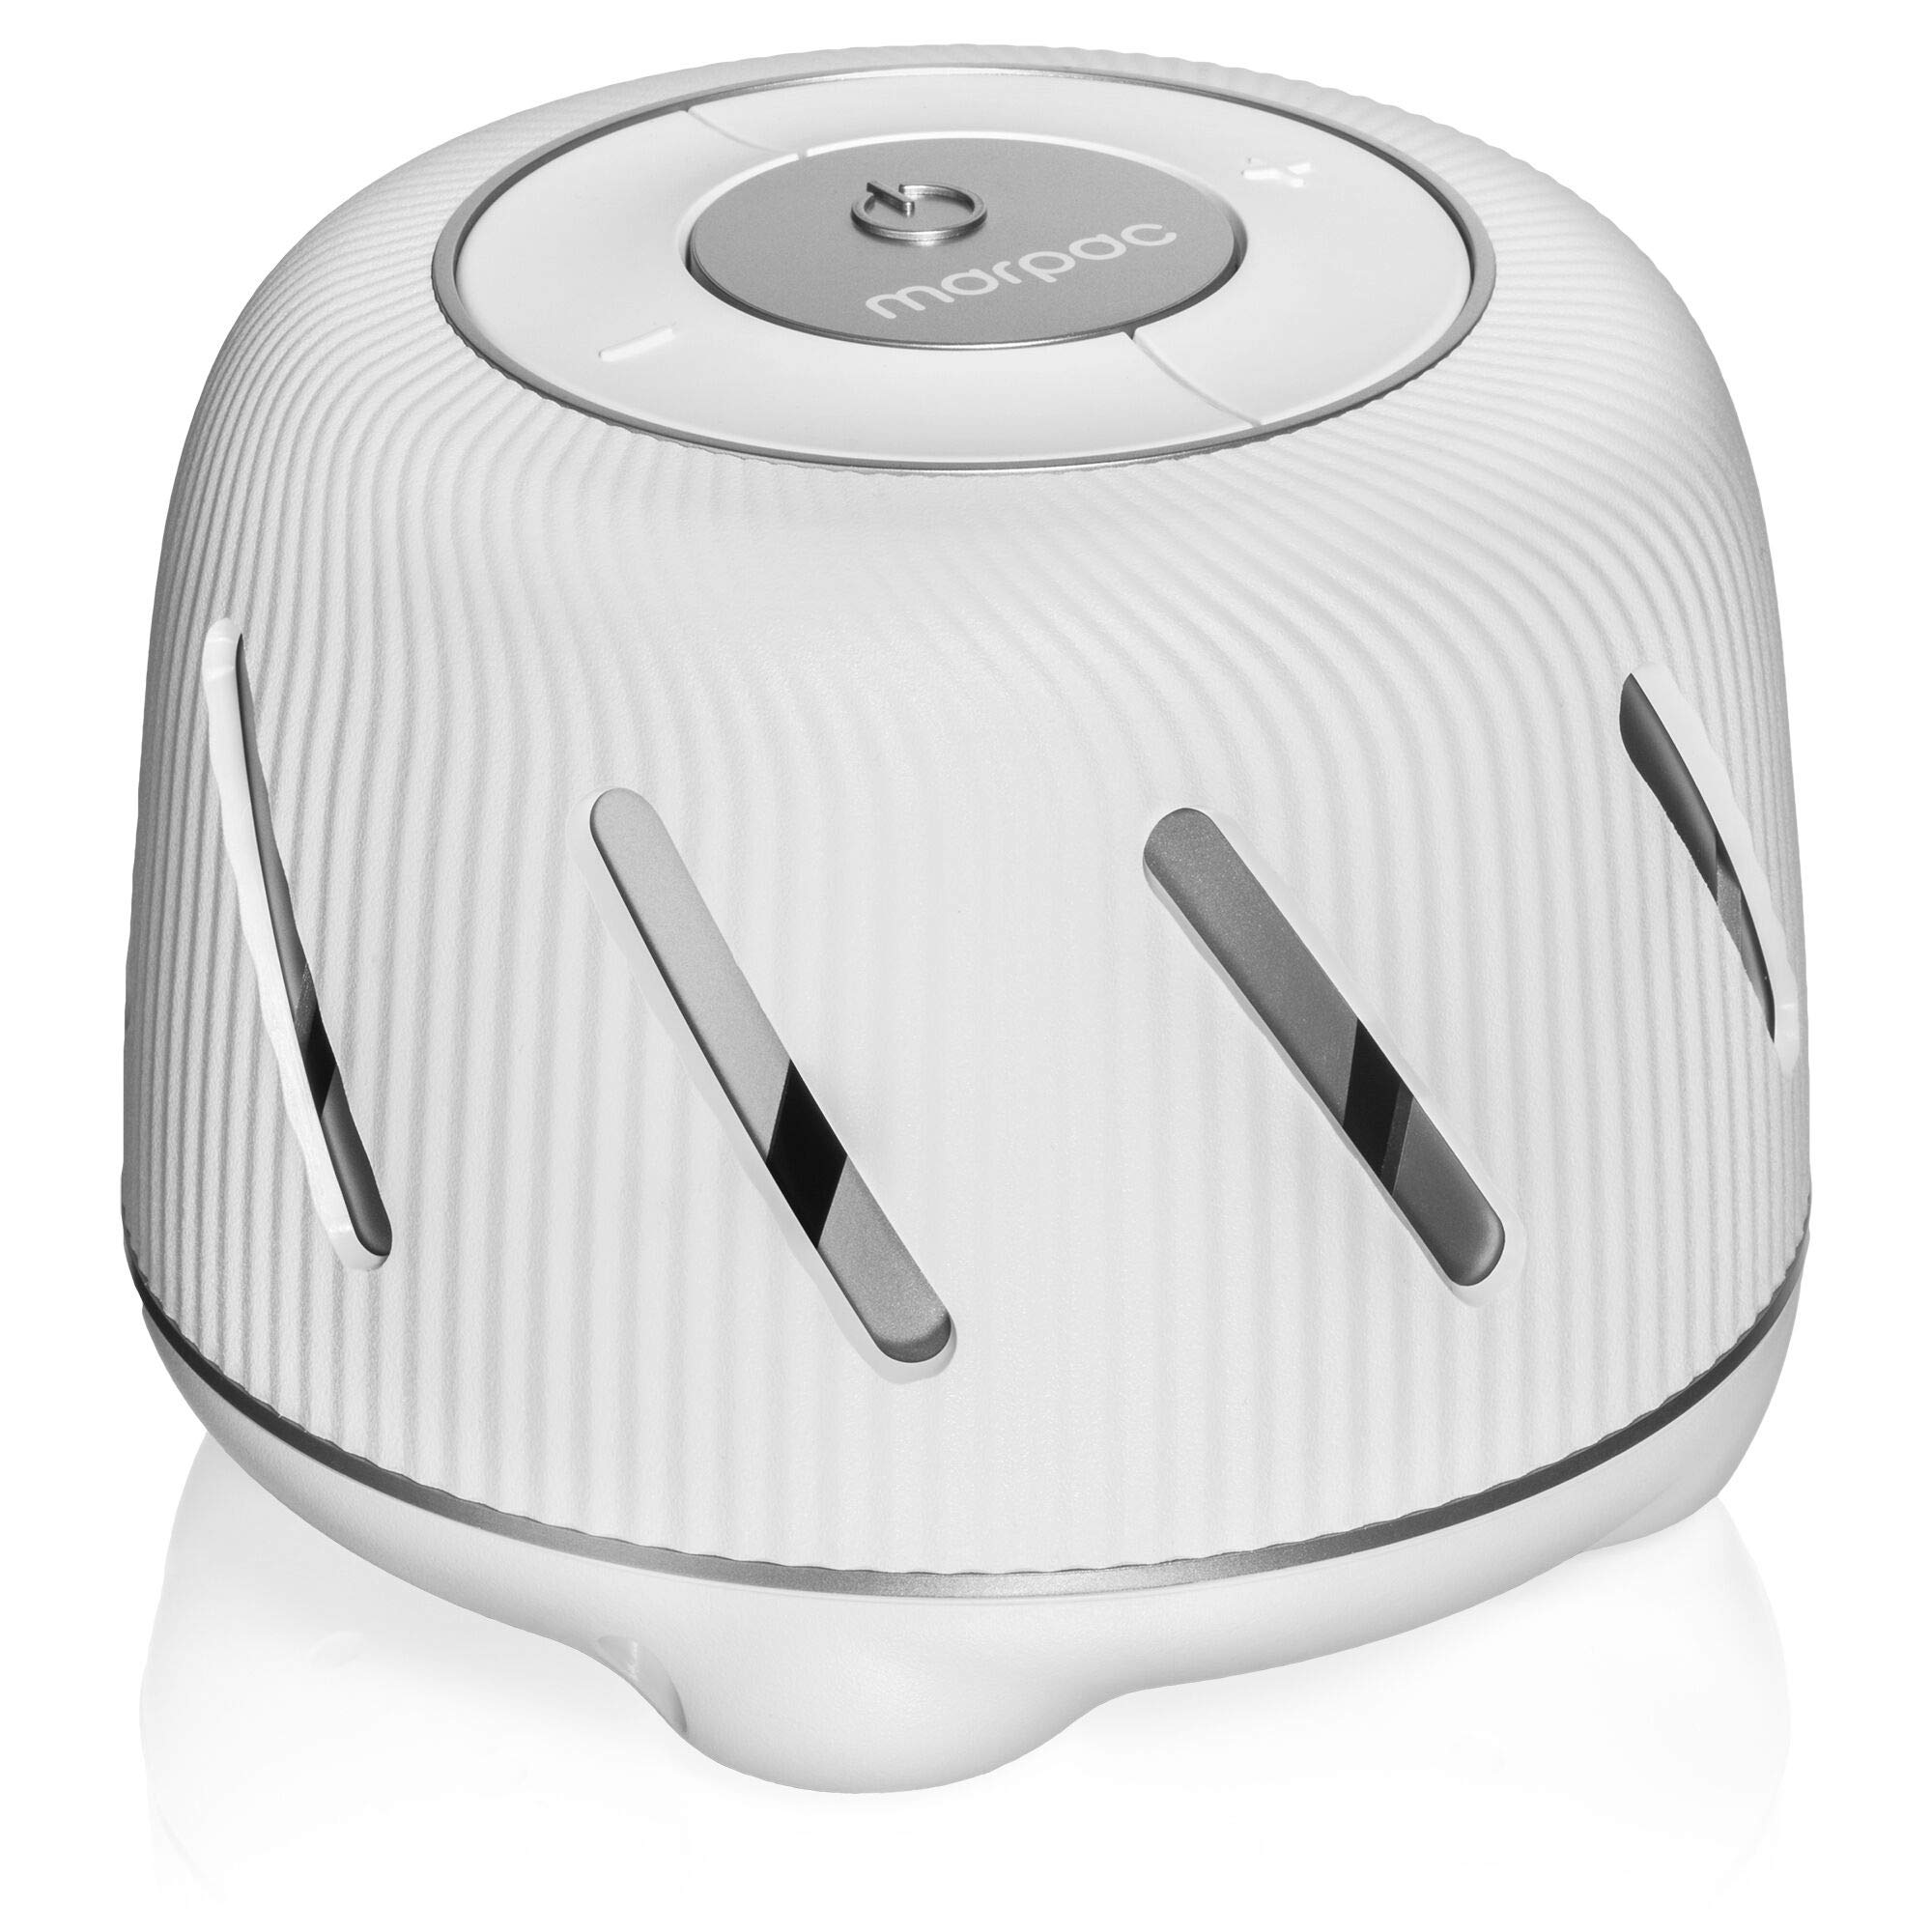 Discontinued - Marpac Connect White Noise Sound Machine, Alexa & App Enabled by Marpac